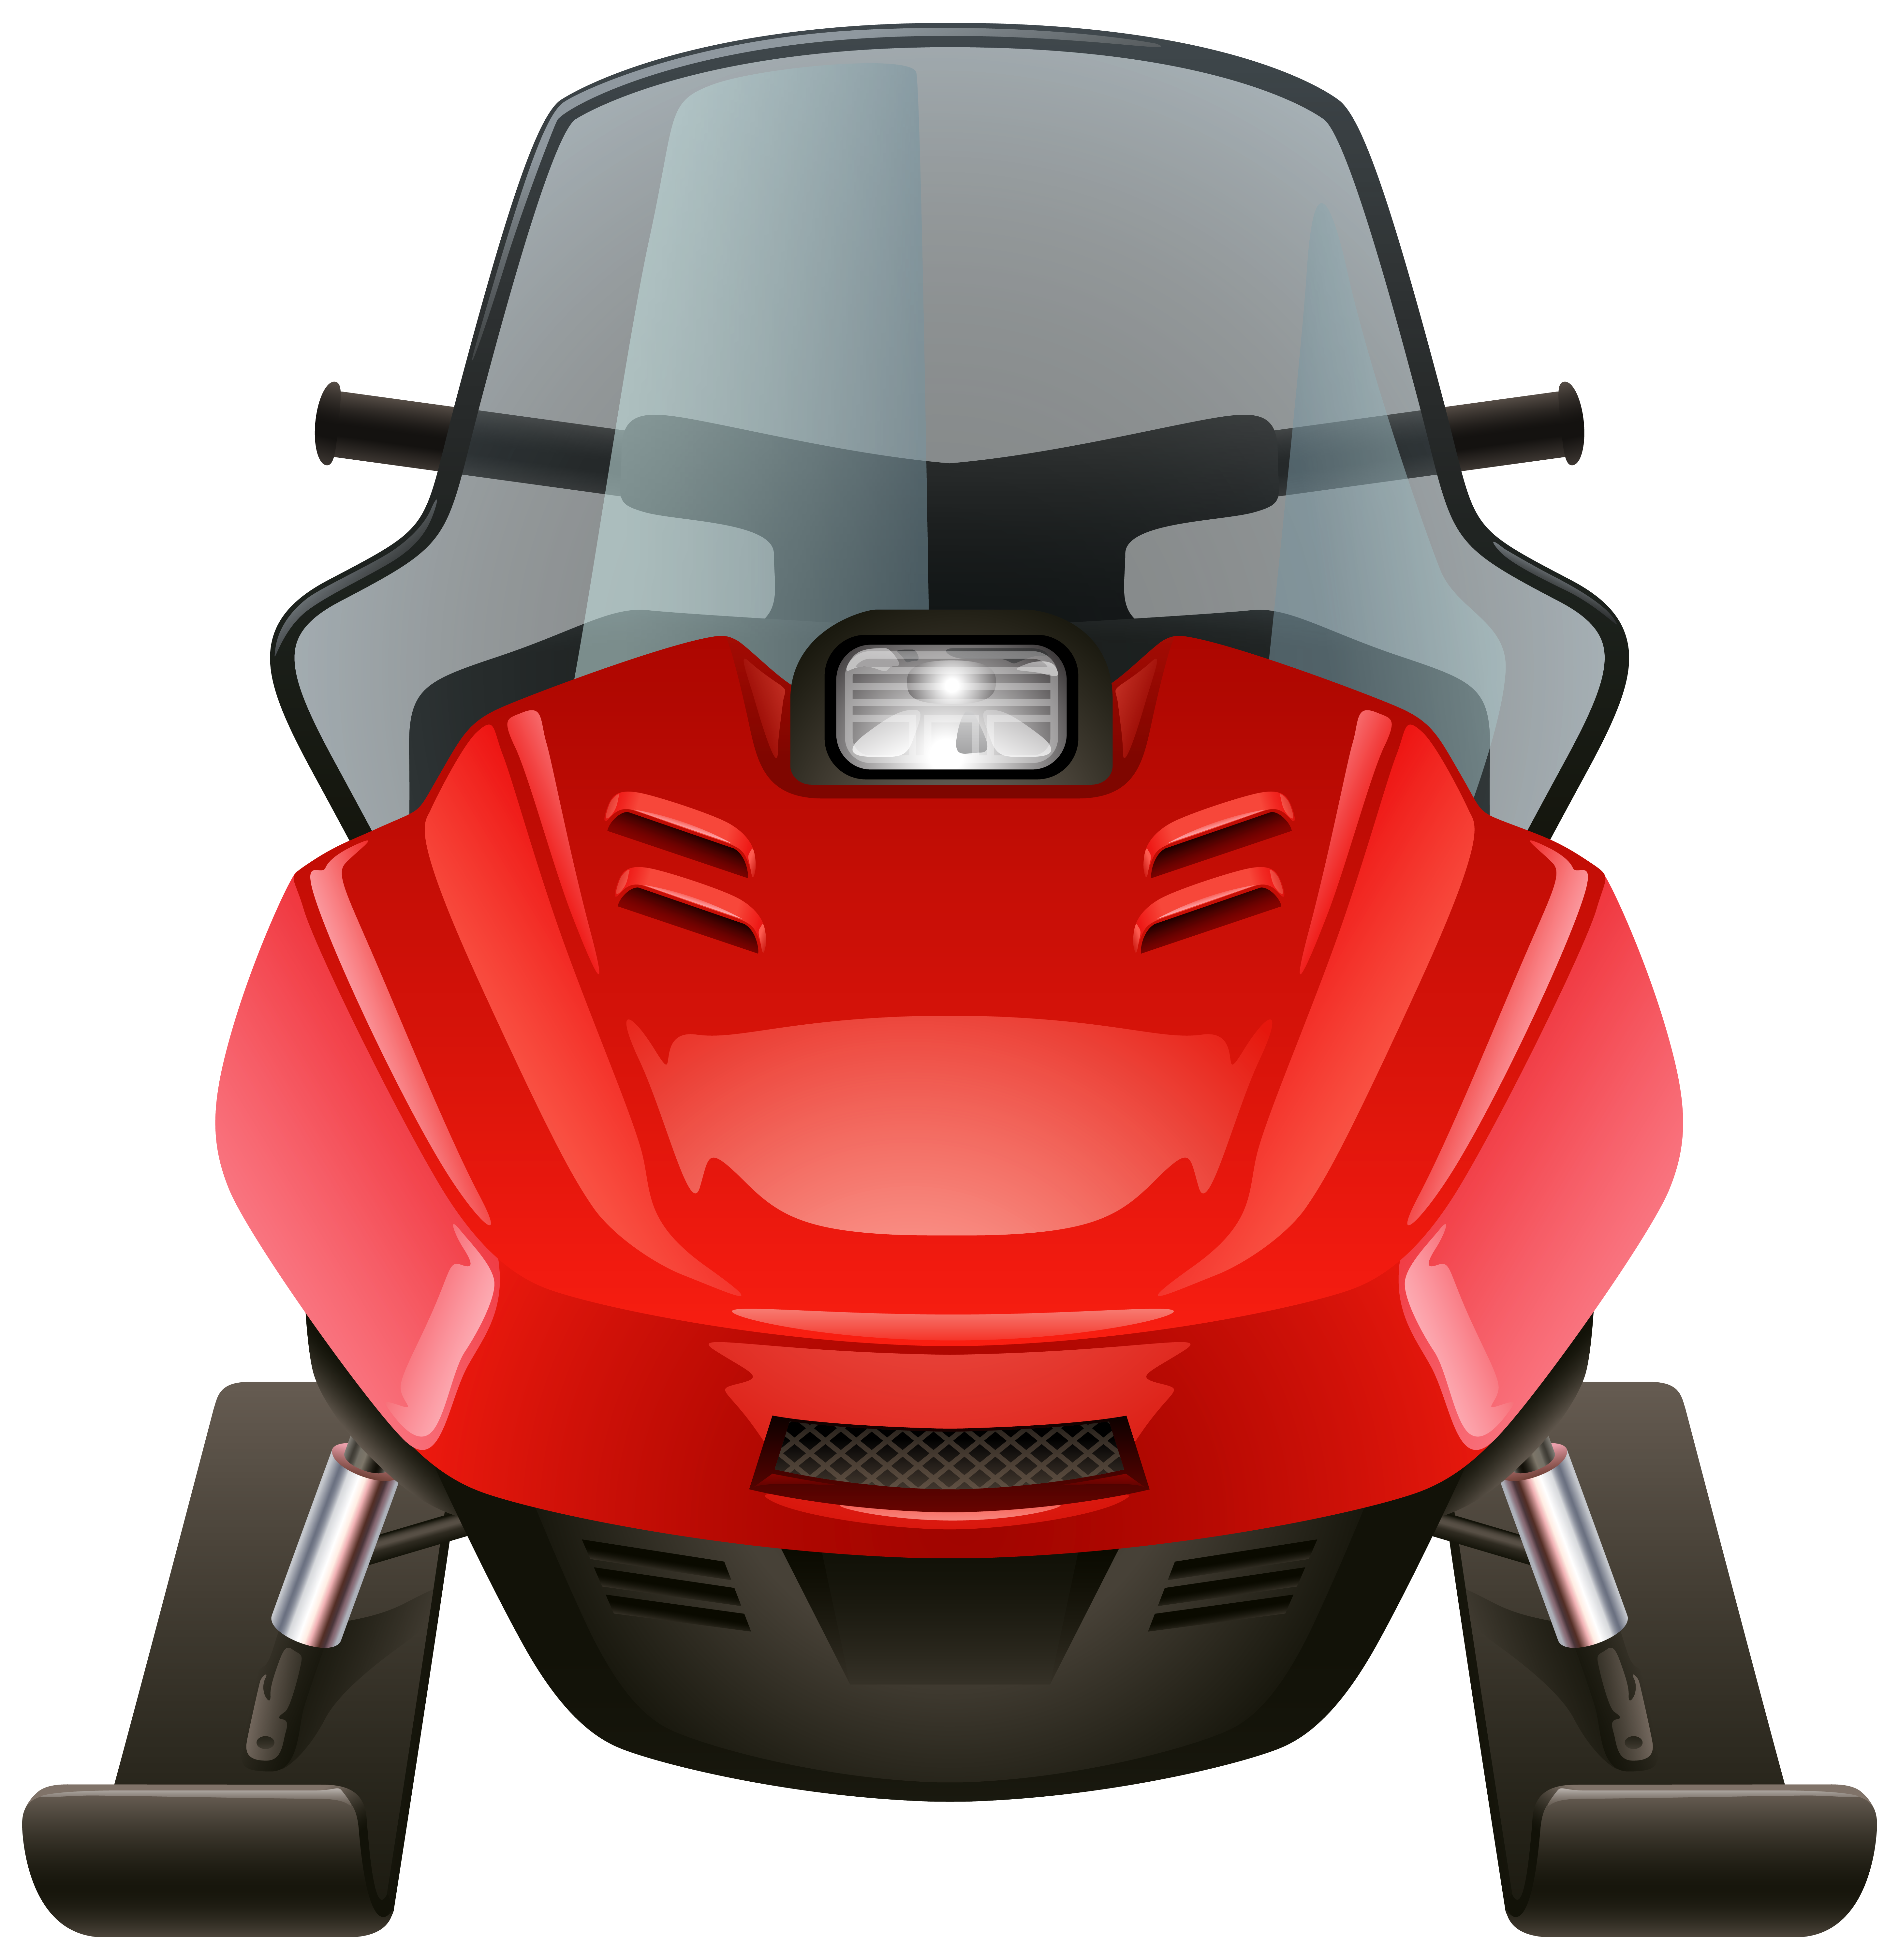 Snowmobile clipart transparent. Png image gallery yopriceville